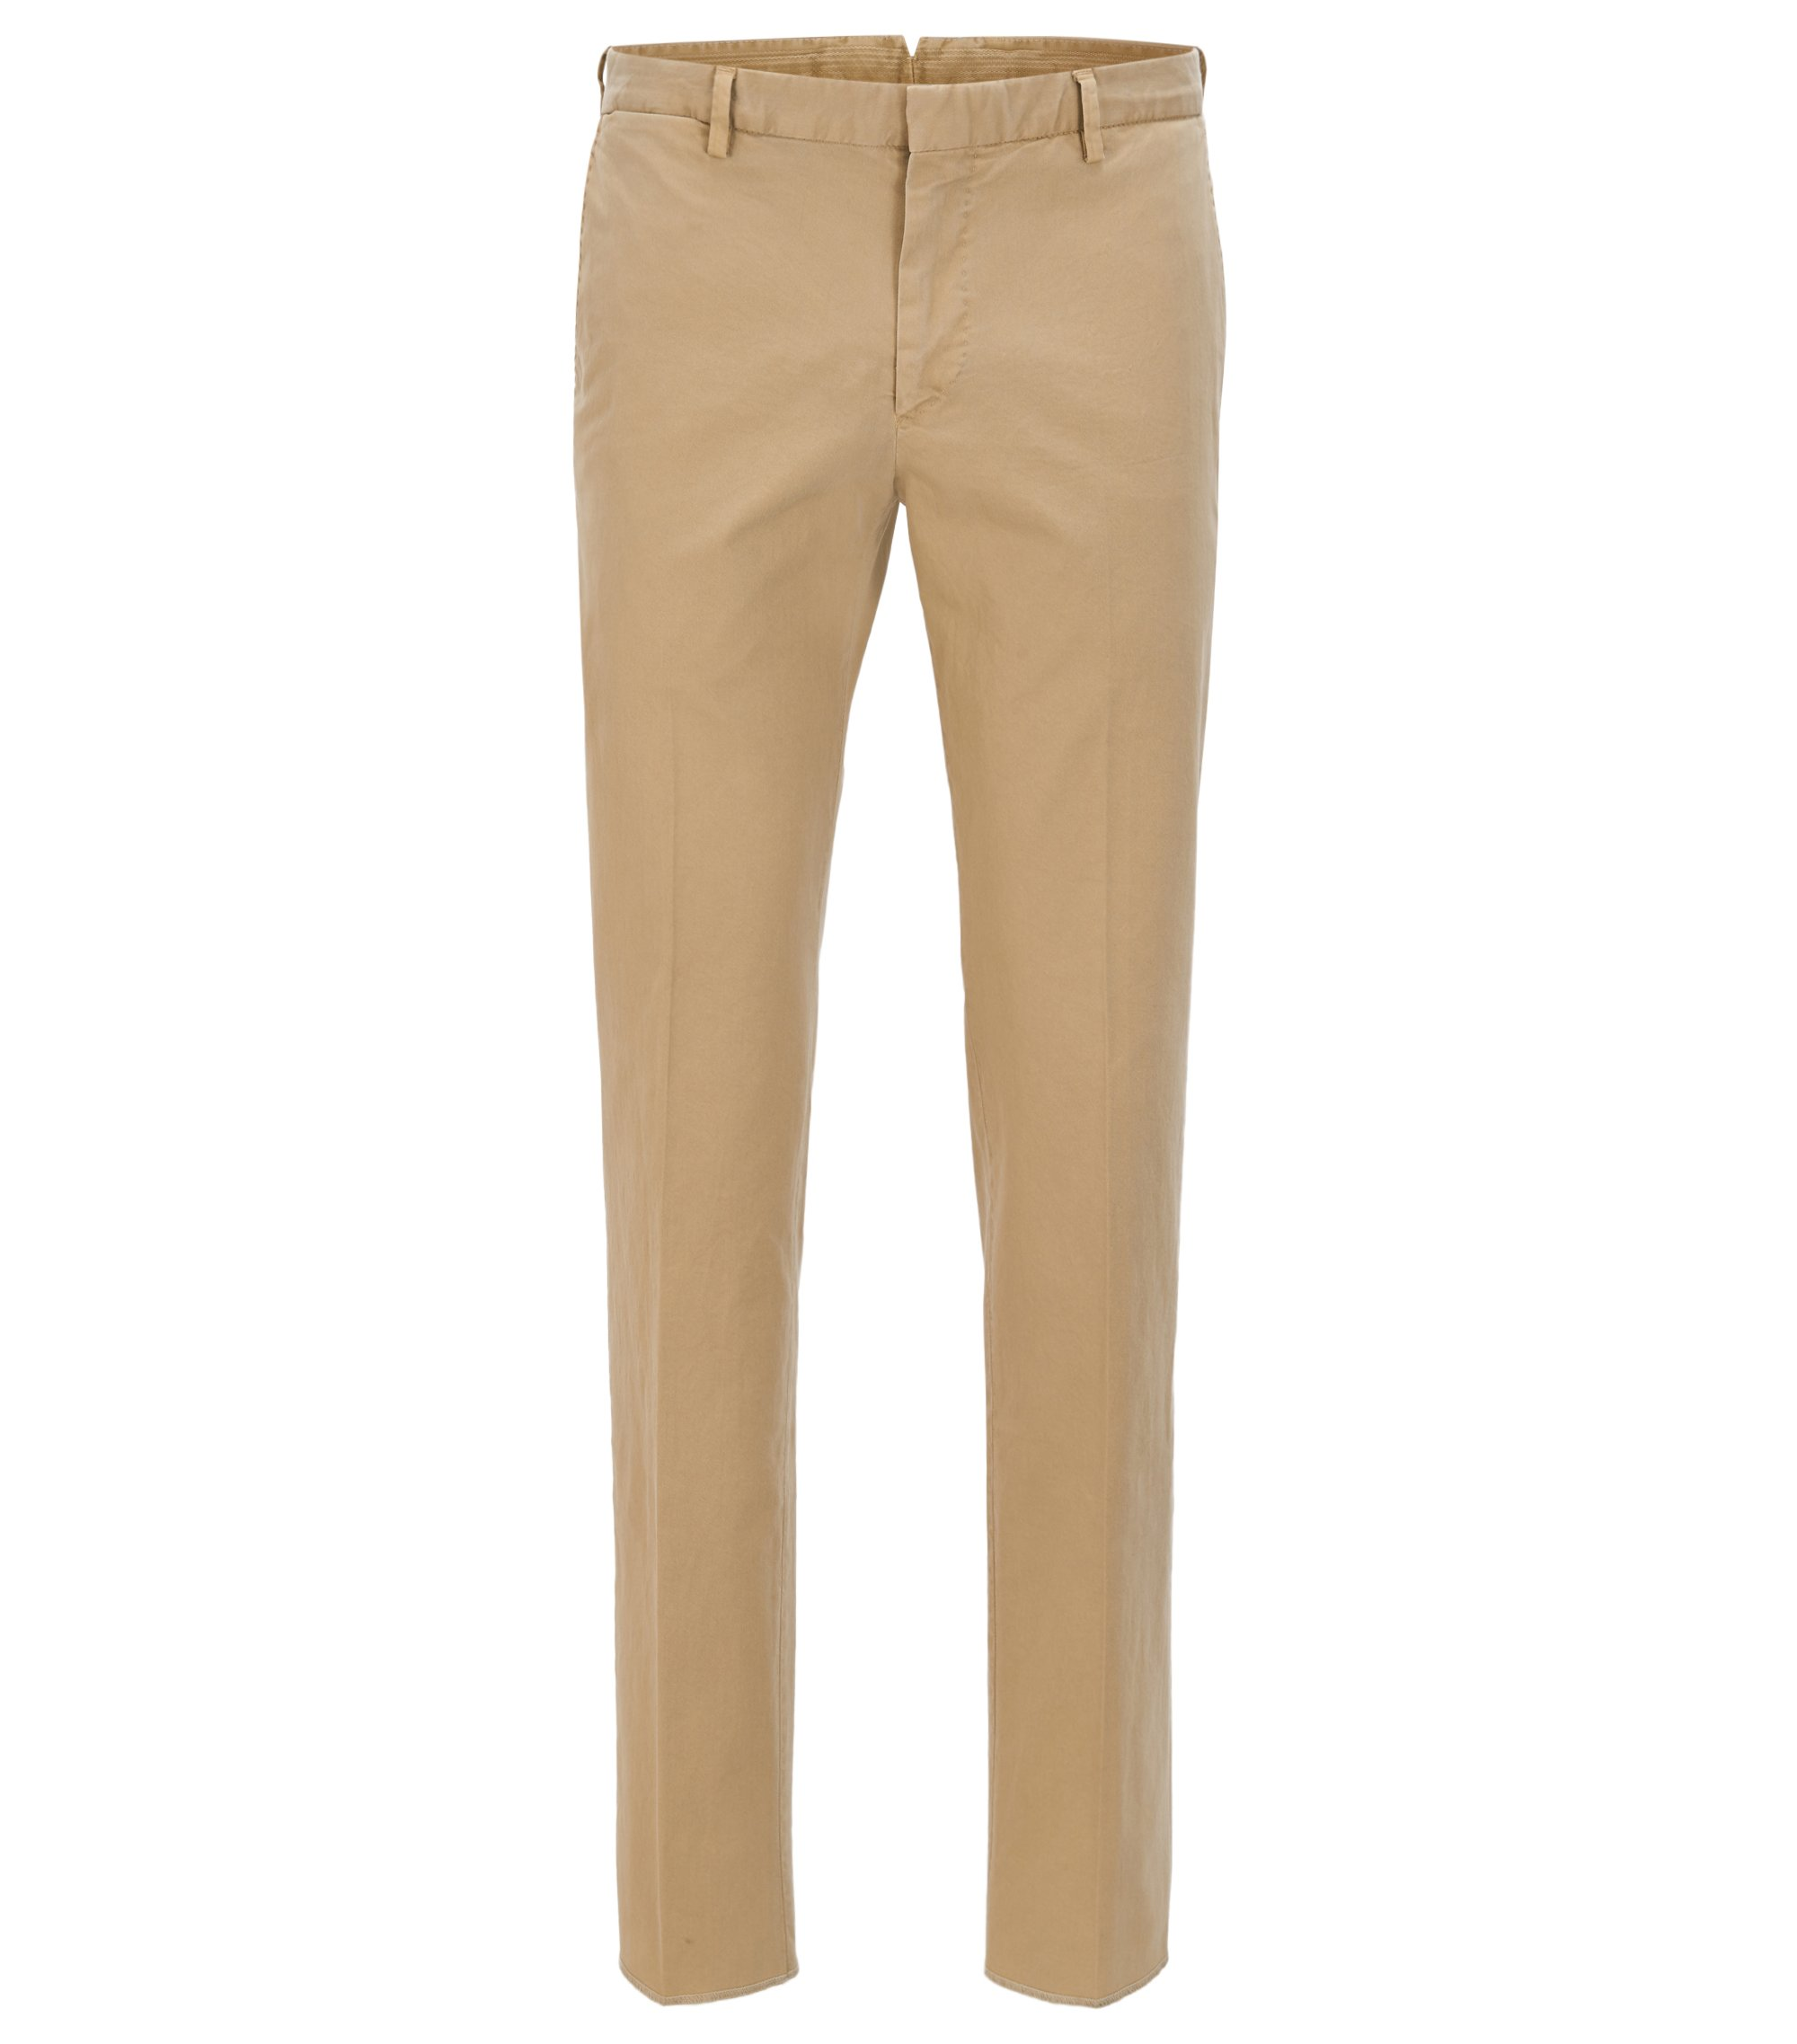 Pantalon Slim Fit en coton stretch teint en pièce, Beige